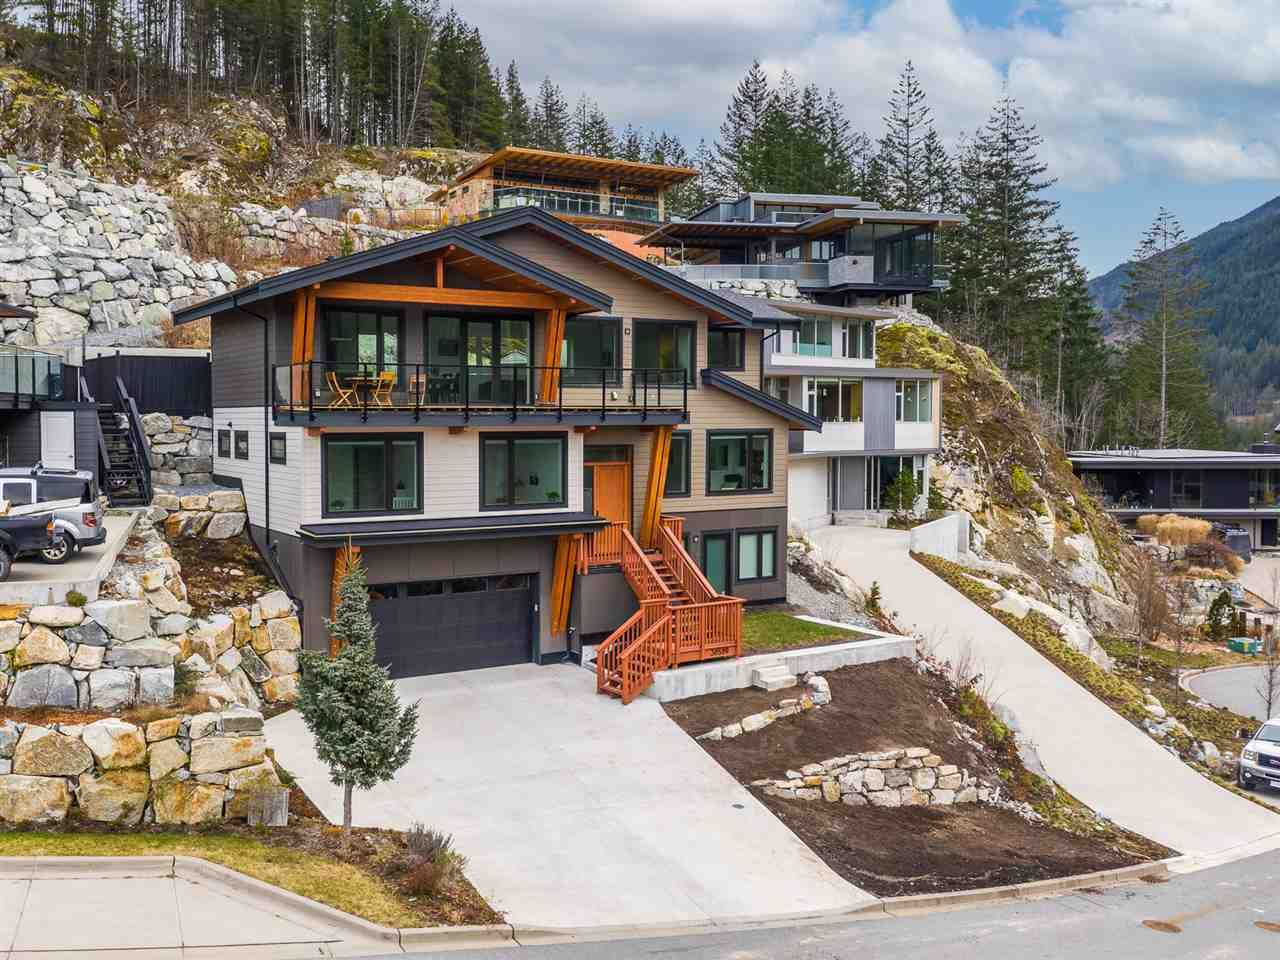 """Main Photo: 38580 HIGH CREEK Drive in Squamish: Plateau House for sale in """"Crumpit Woods"""" : MLS®# R2547060"""